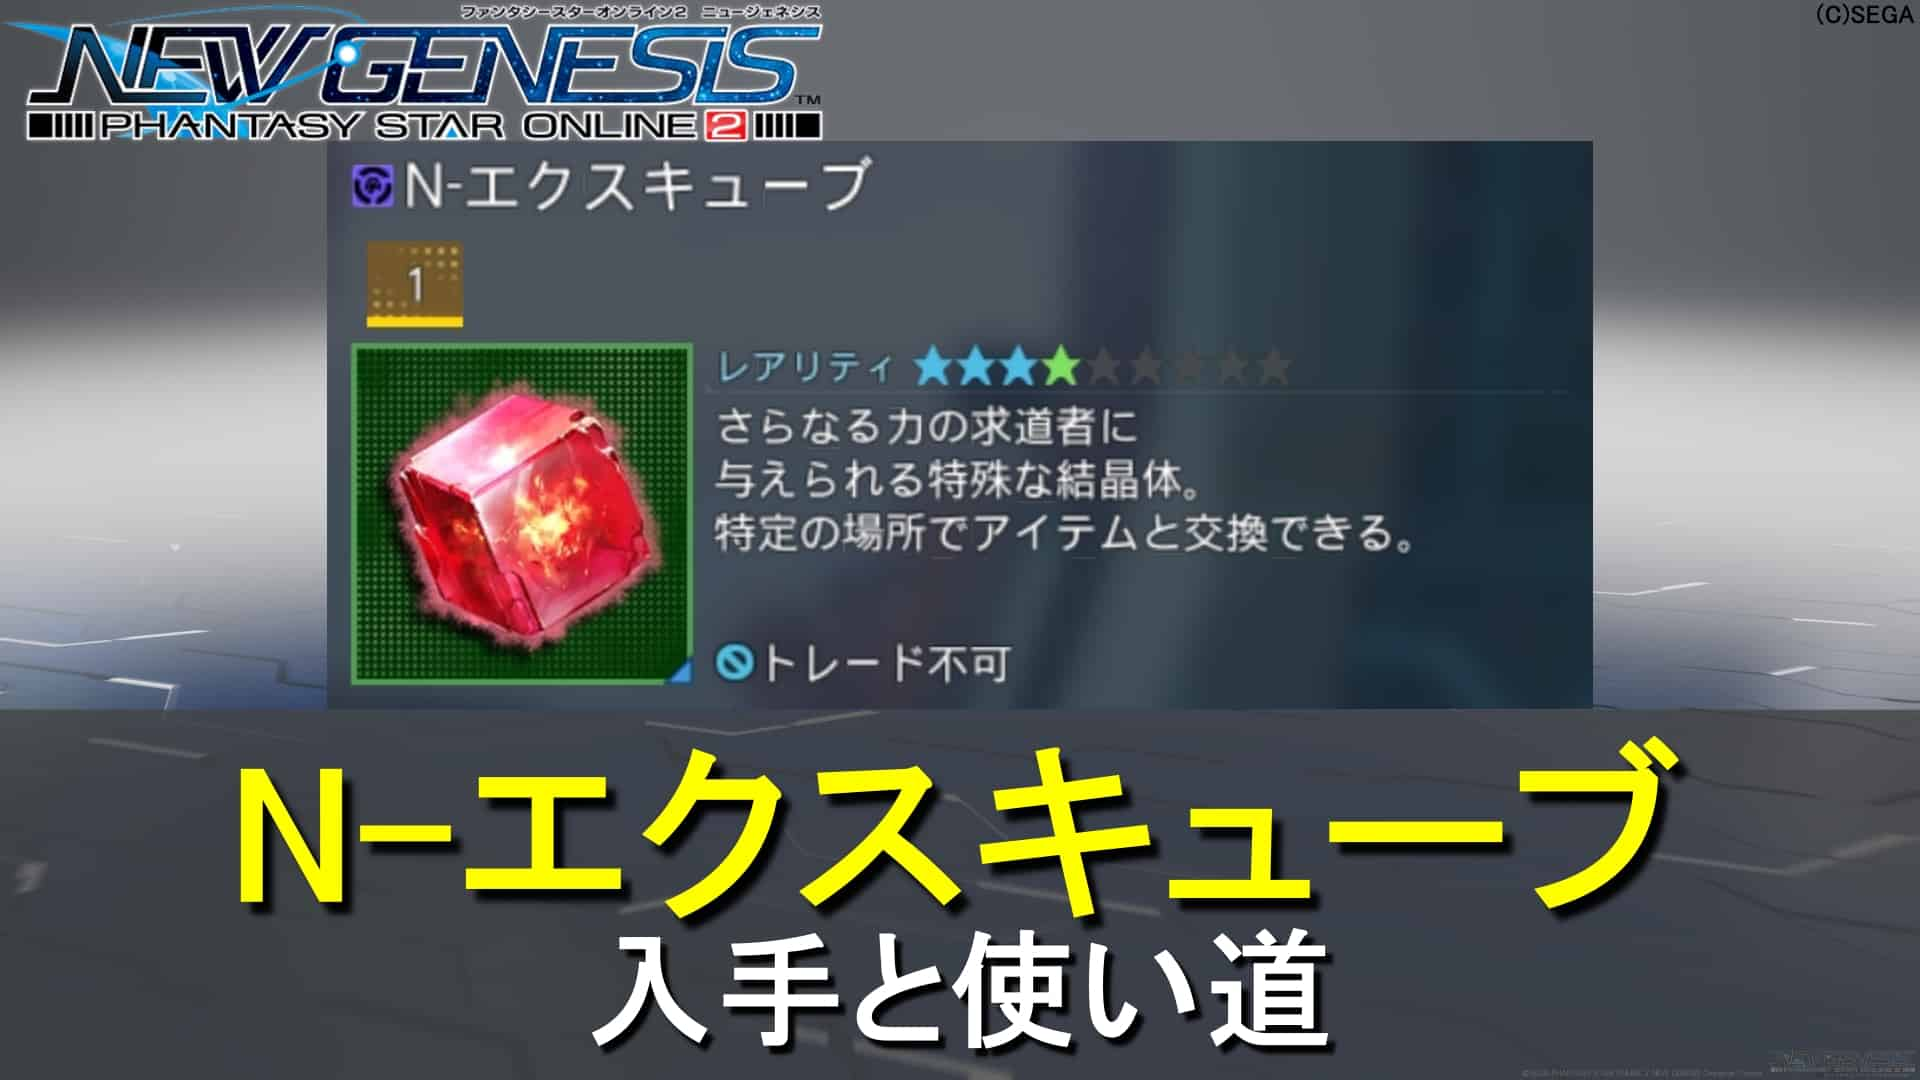 【PSO2NGS】N-エクスキューブの入手と使い道